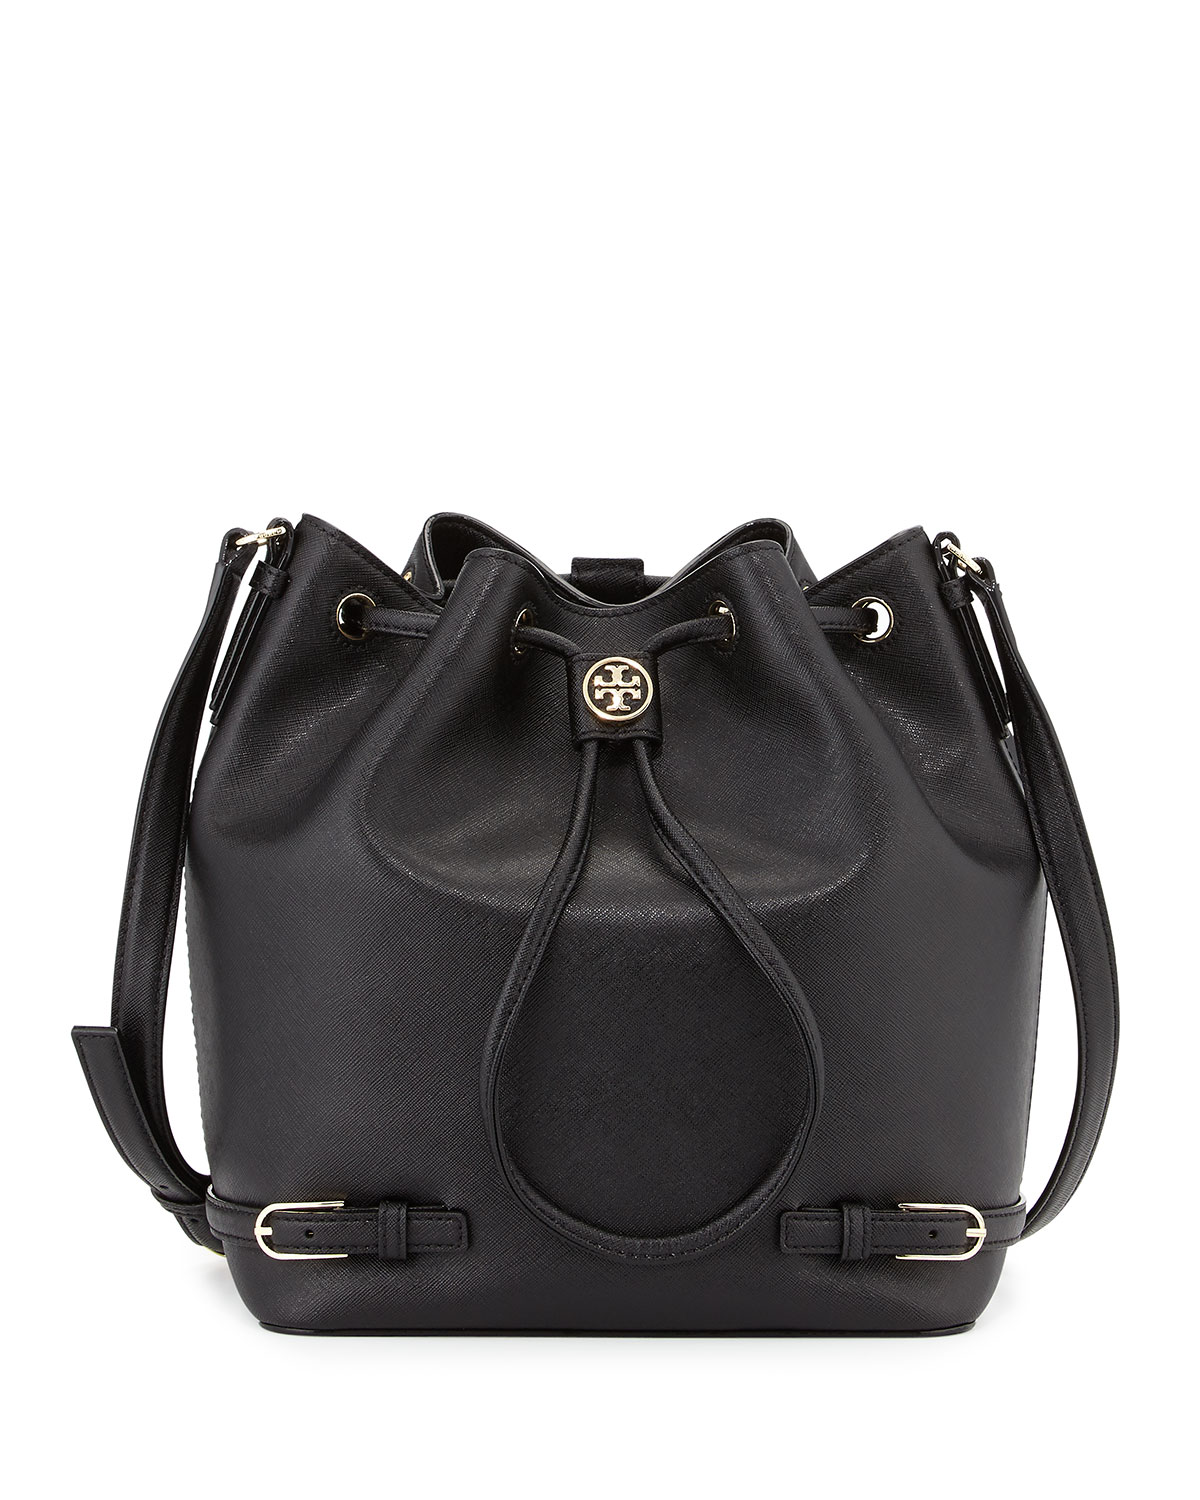 2ef7739be8f Tory Burch Robinson Leather Bucket Bag Black Neiman Marcus. Tory Burch Bag  Block T Bucket 2 Colors 11169642 ...